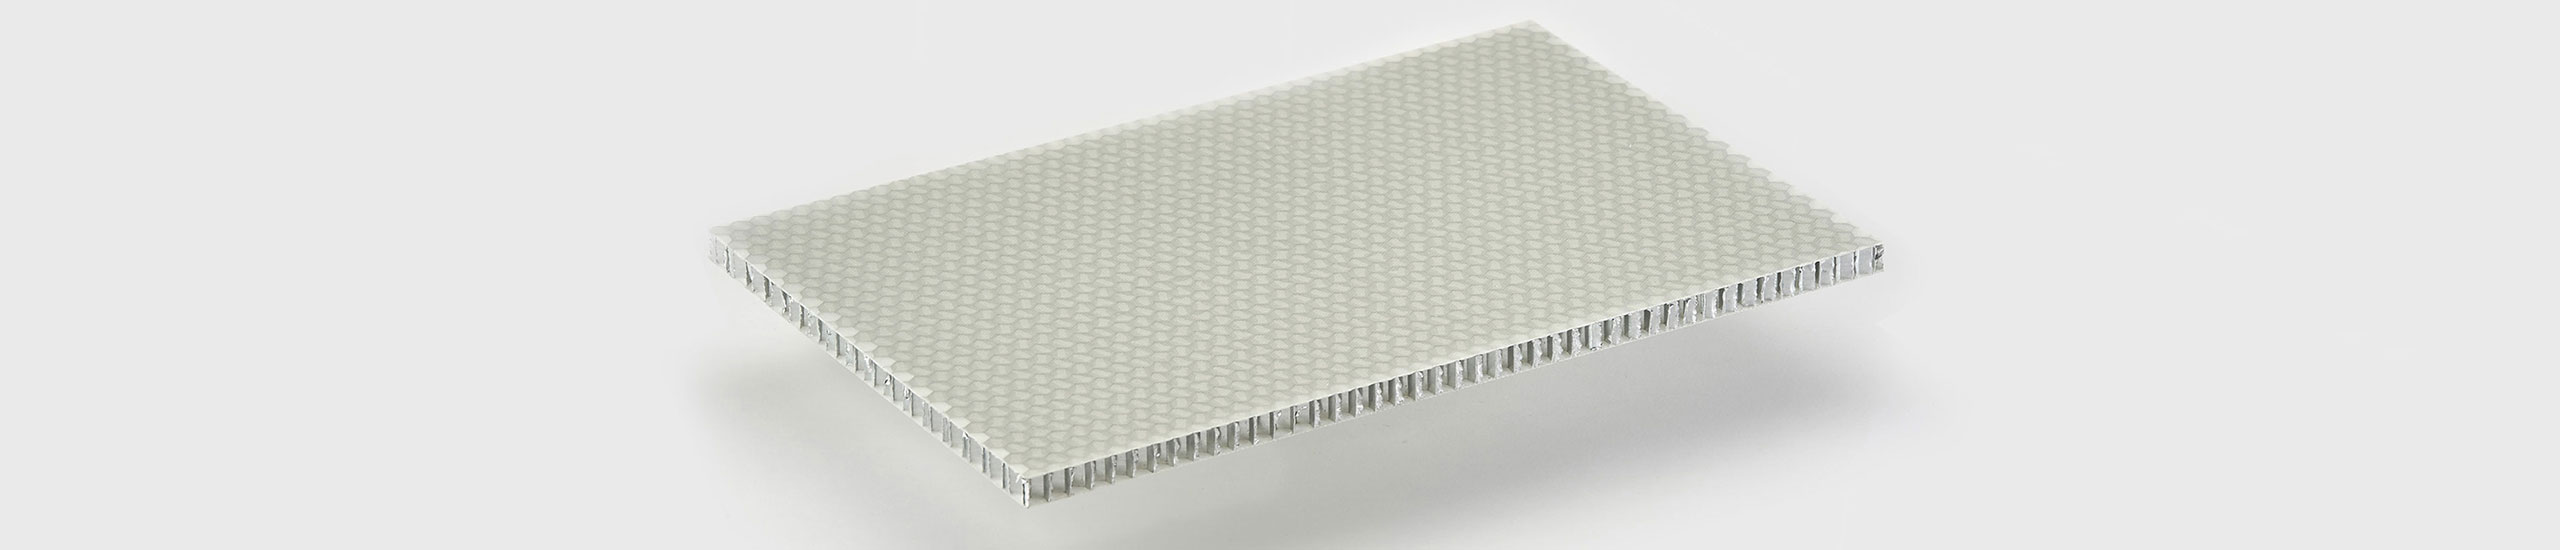 ALUSTEP ® 300 LIGHT is a lightweight composite panel with an aluminium honeycomb core faced with fiber glass impregnated with epoxy resin.